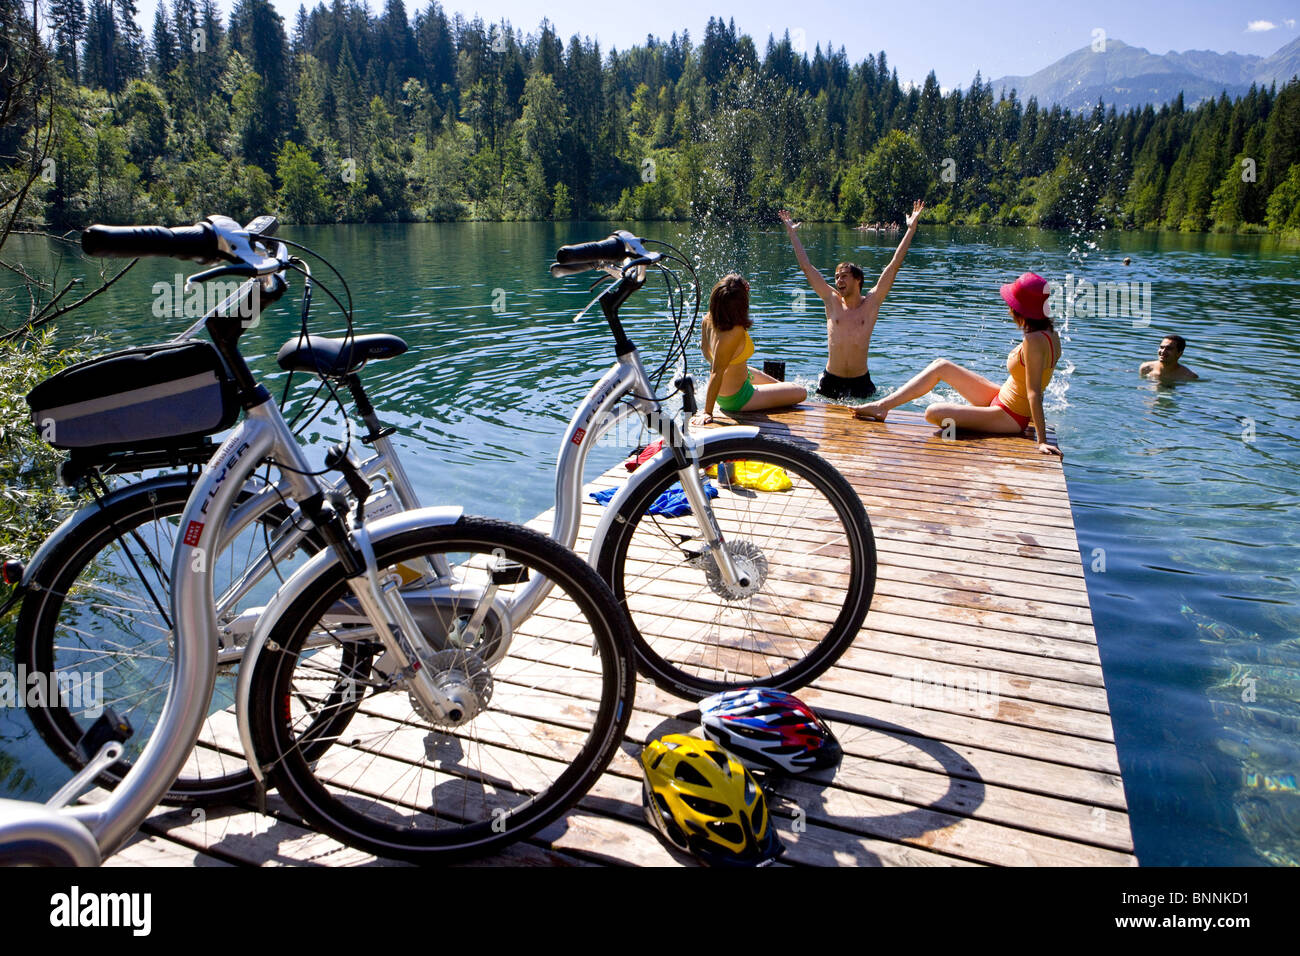 Switzerland swiss bath chat Crestasee summer sport spare time electric bicycles canton Graubünden Grisons group - Stock Image